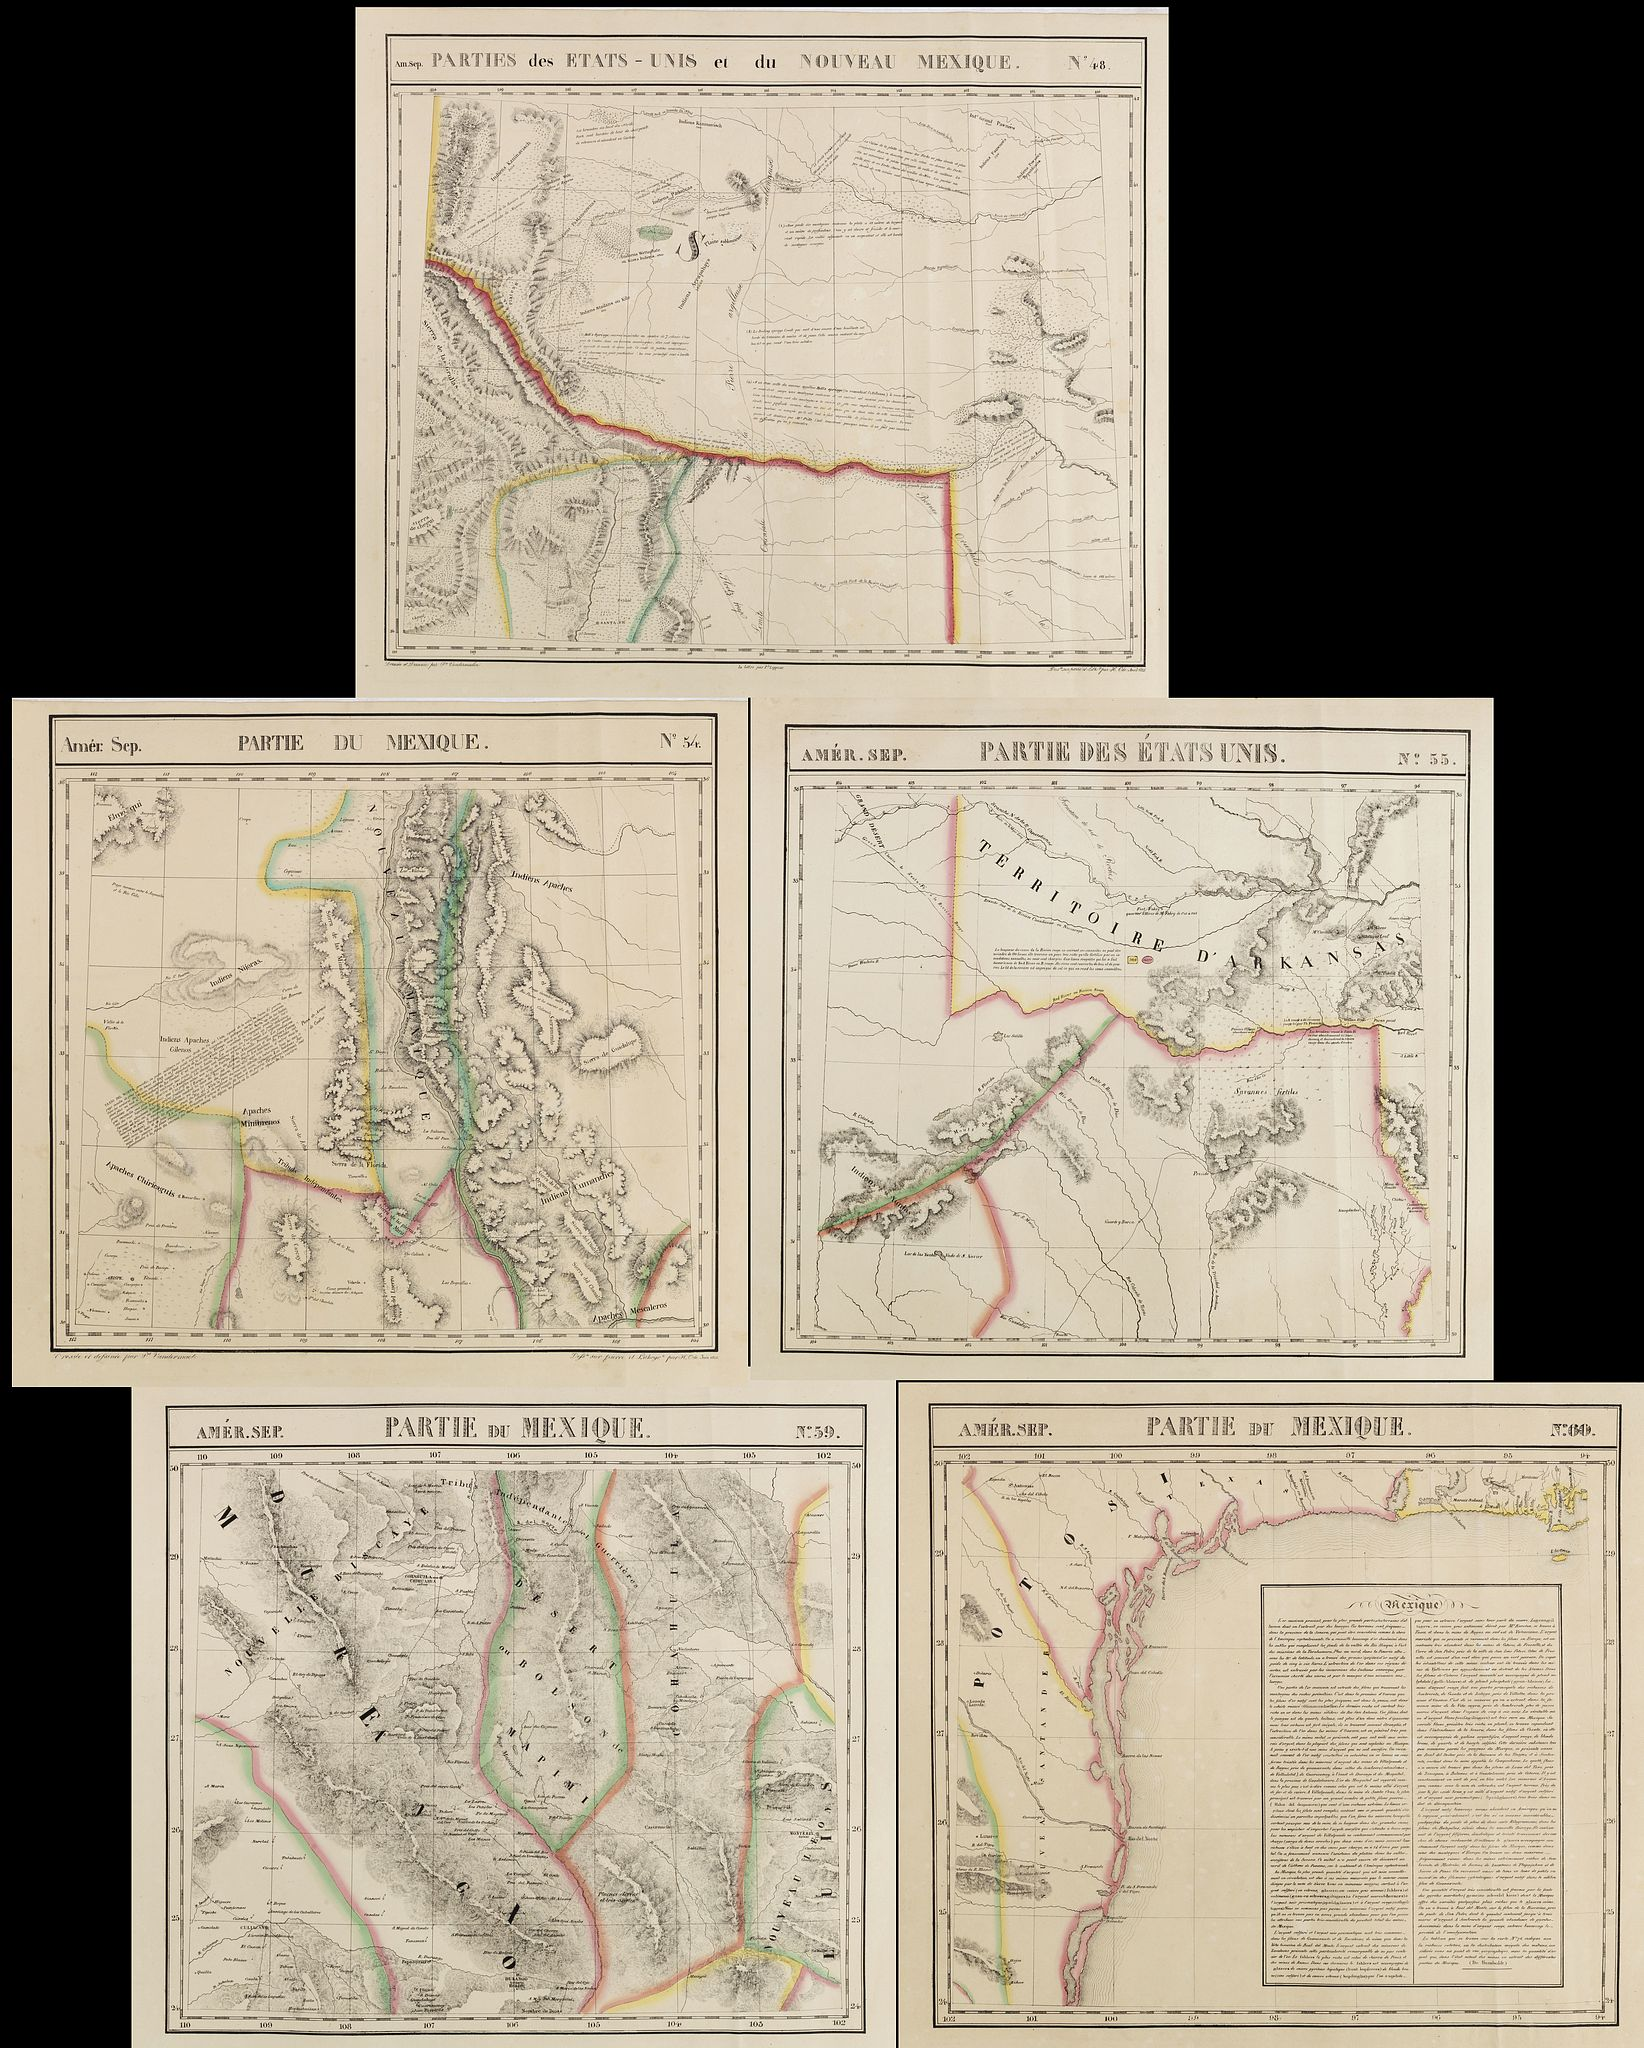 VANDERMAELEN, Ph.,  [TEXAS] Set of 5 maps in plano format, on an uniform scale, covering Texas., antique map, old maps